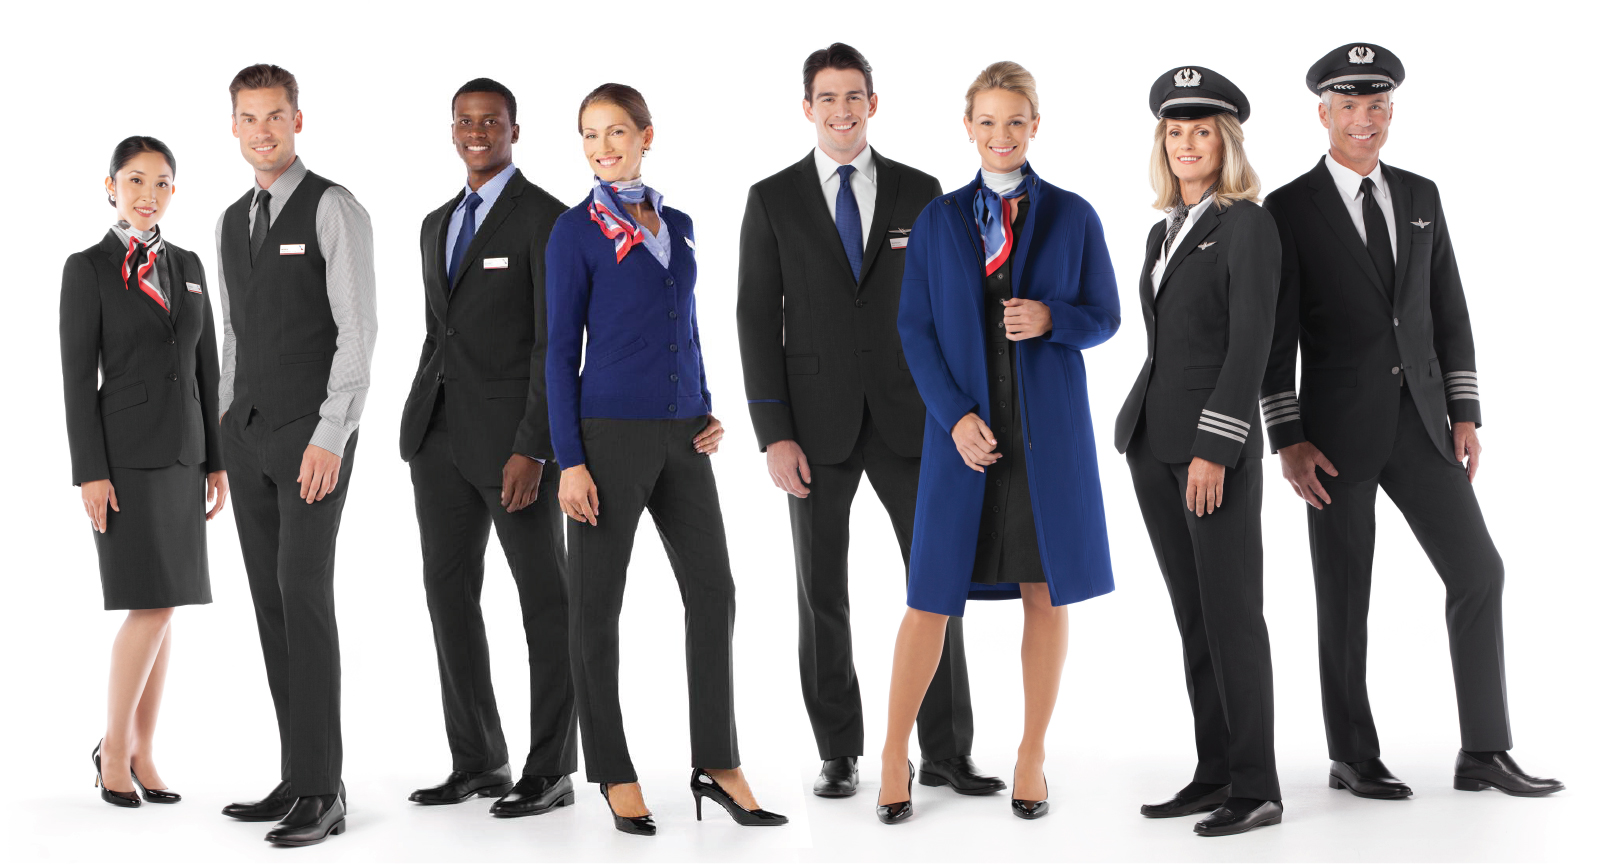 The American Airlines uniforms by Twin Hill